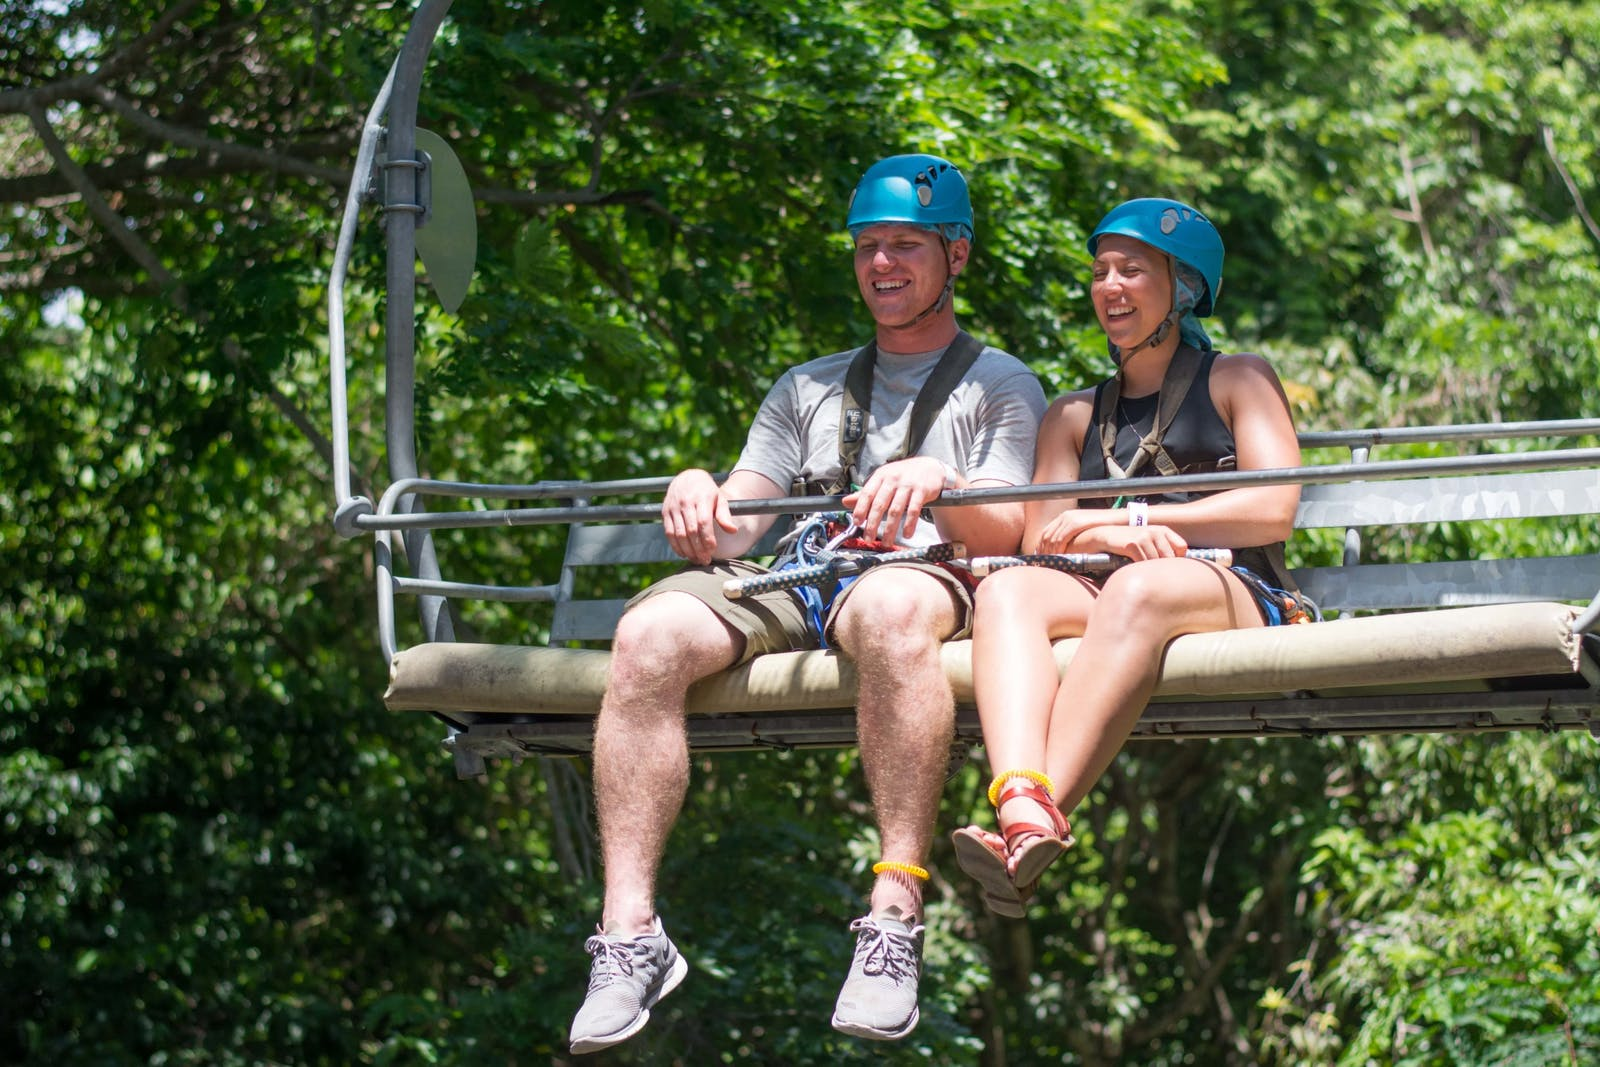 two people going to zipline